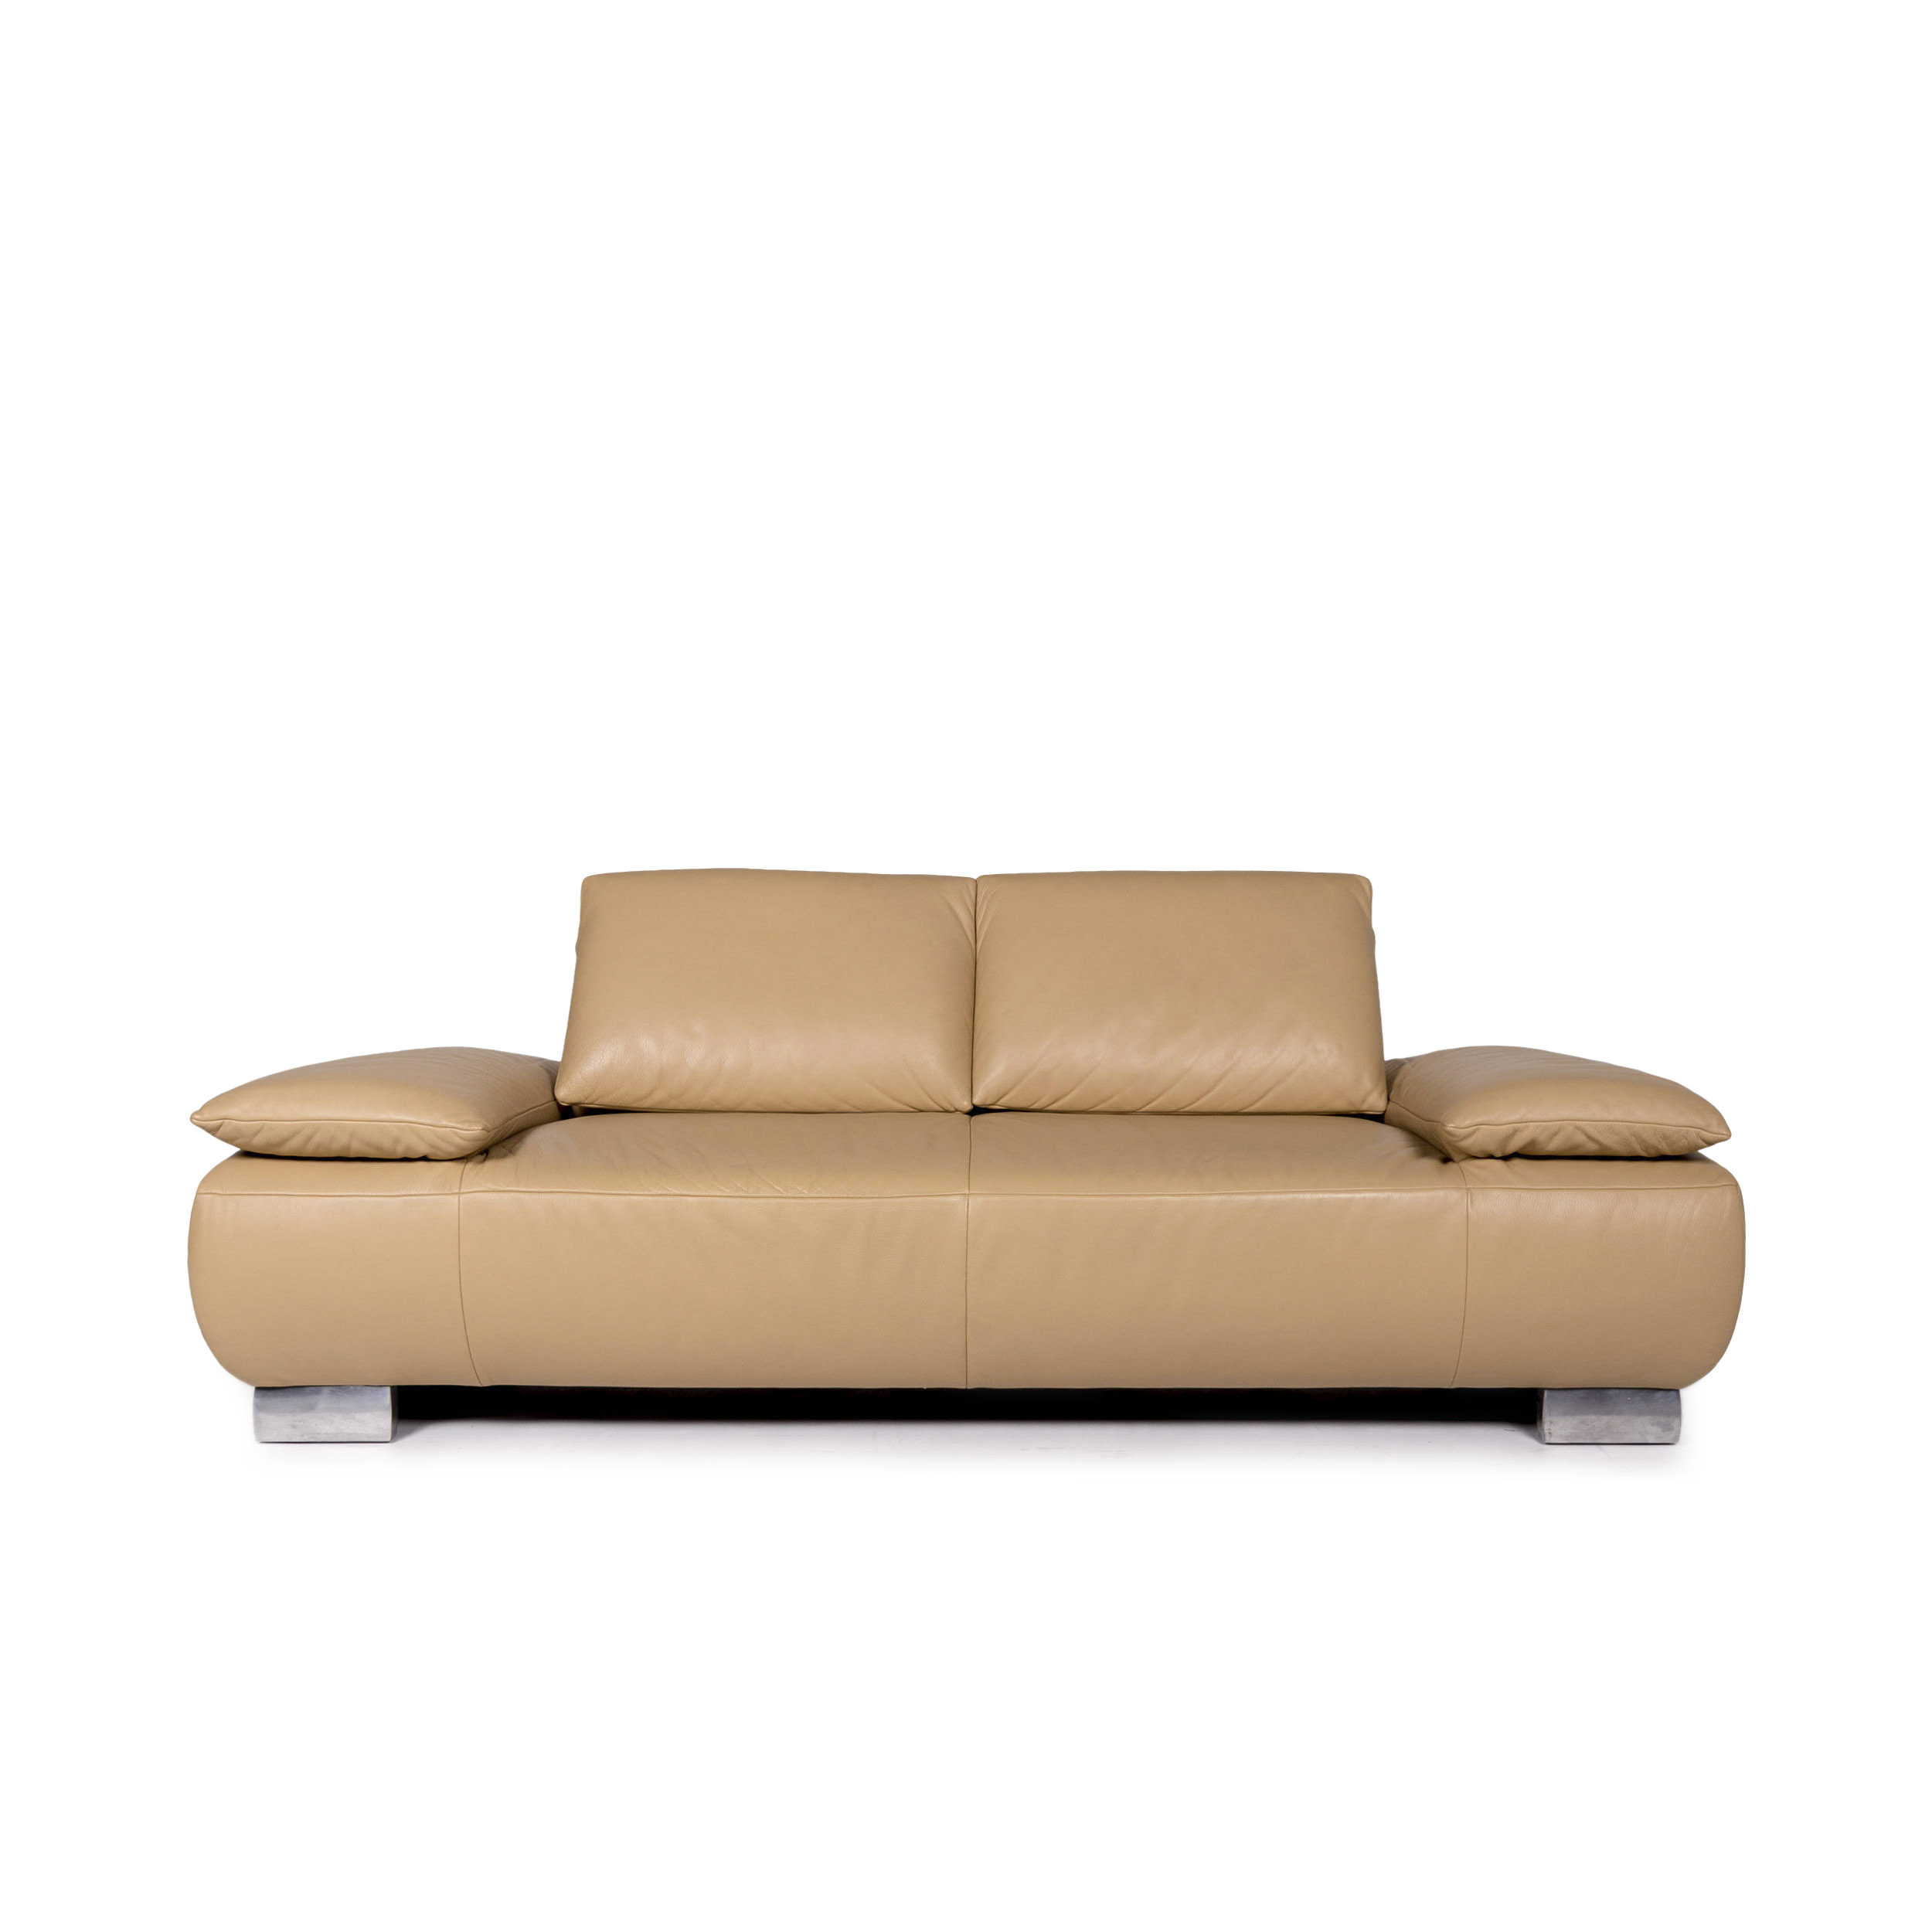 Koinor Volare Leather Sofa Beige Two Seater function couch ...